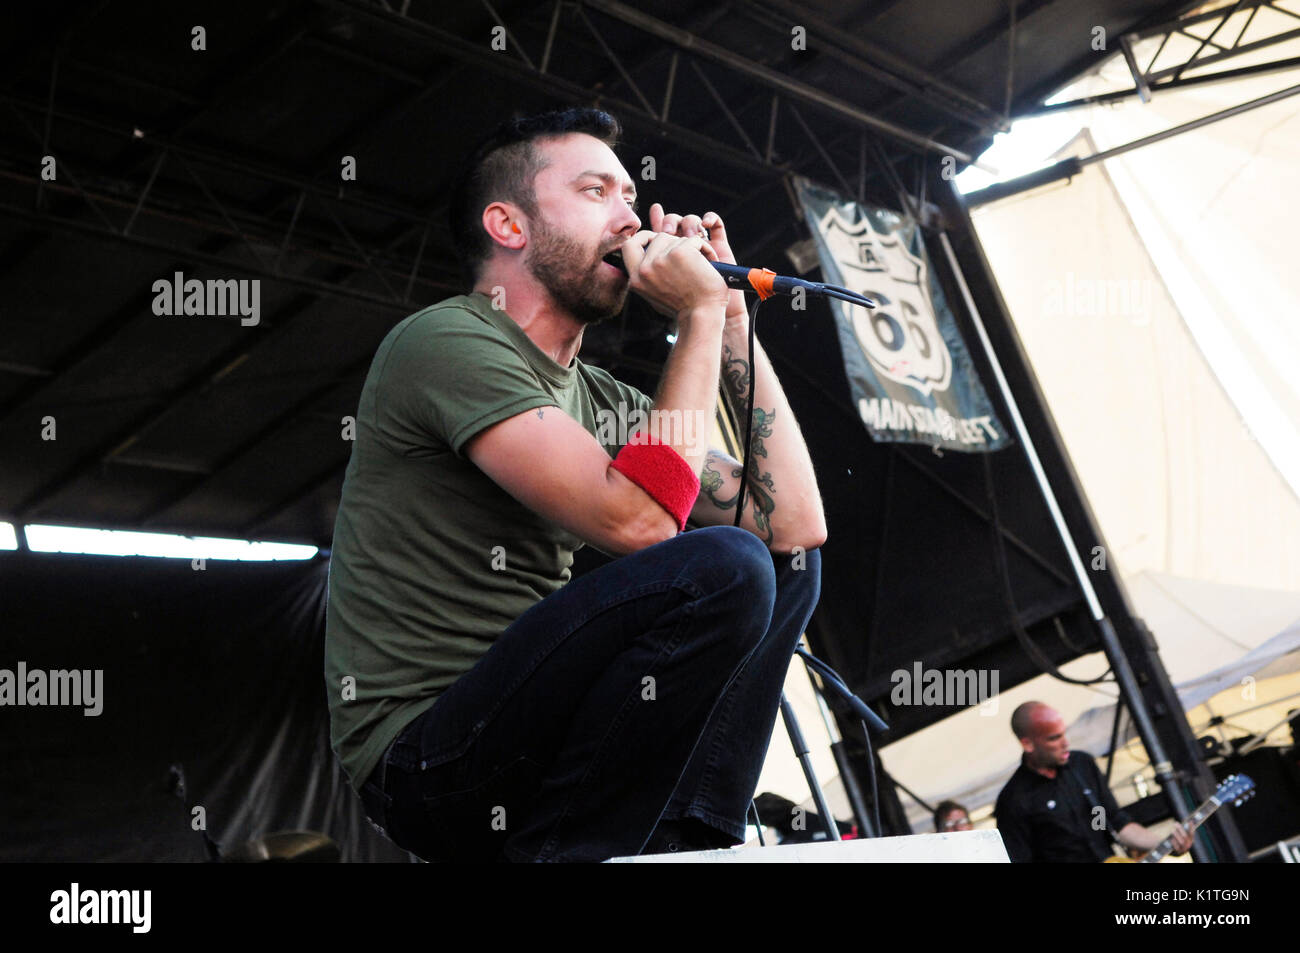 Tim McIlrath Rise Against performing 2008 Vans Warped Tour Coors Amphitheater San Diego. - Stock Image